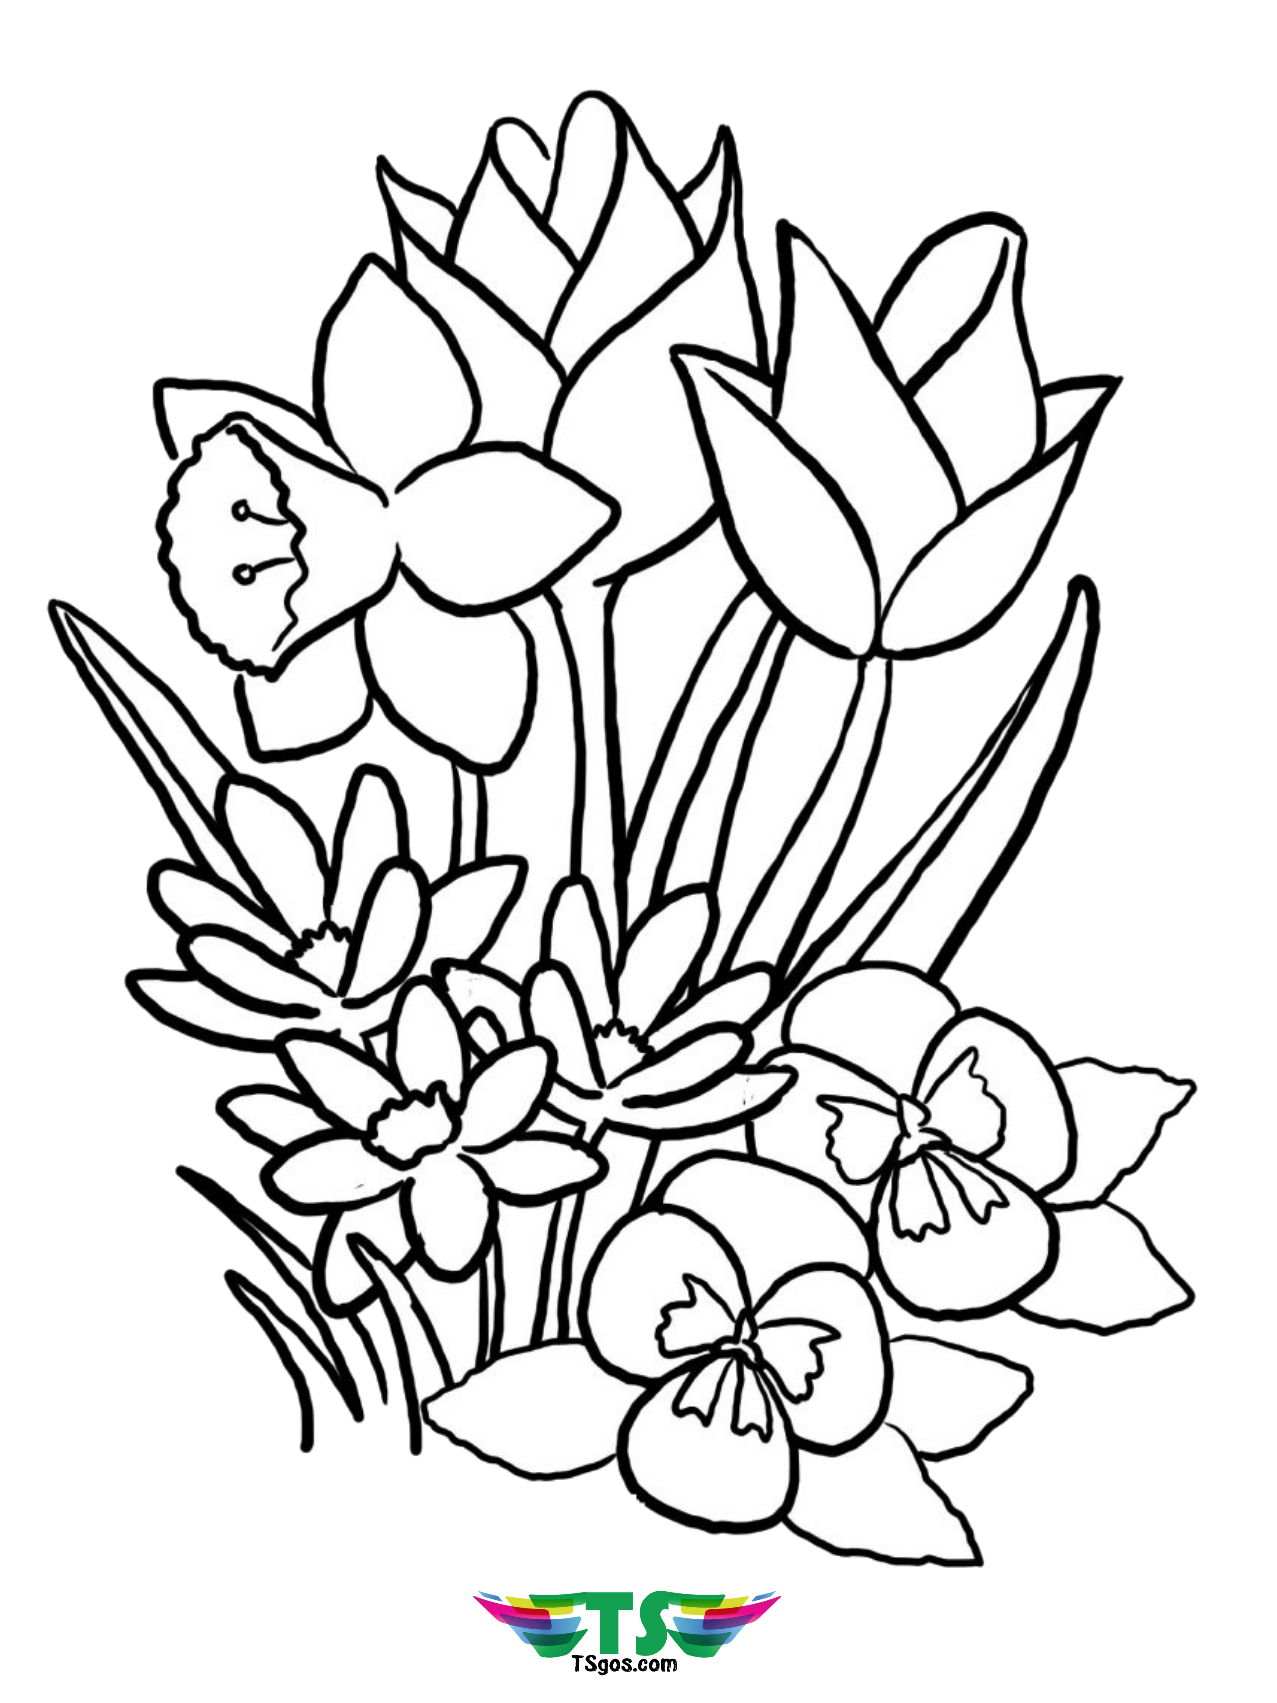 flower printable coloring pages flower coloring pages for adults best coloring pages for pages printable coloring flower